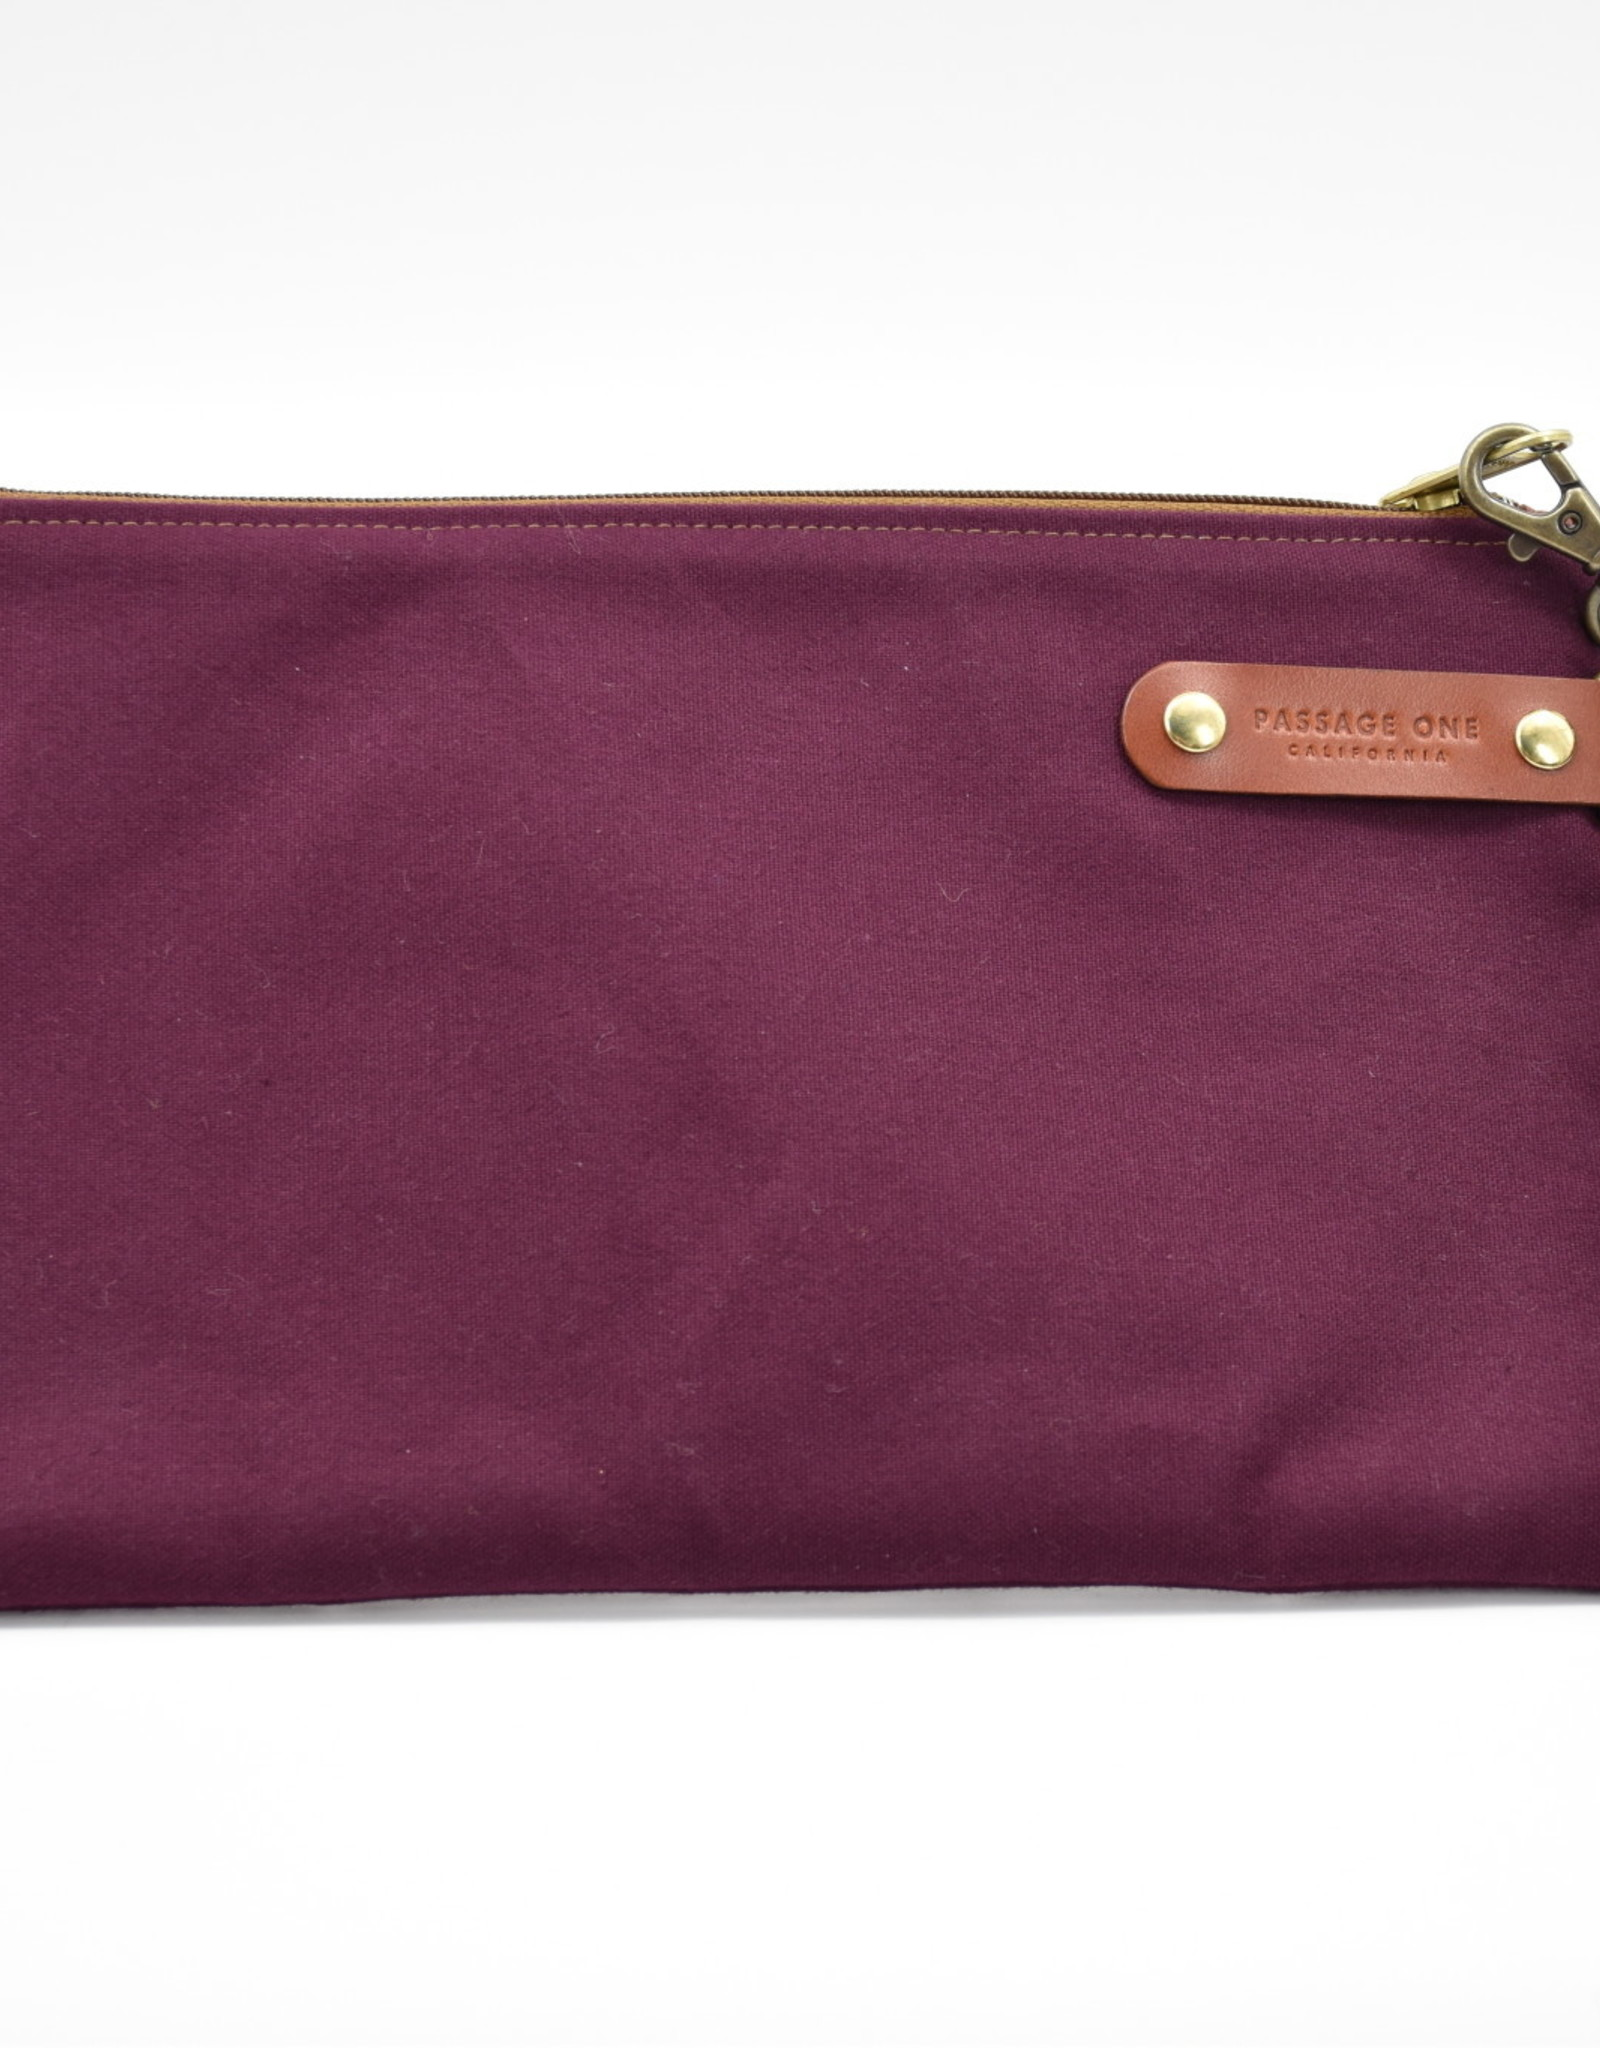 Airporter Clutch with Leather Loop - Burgundy